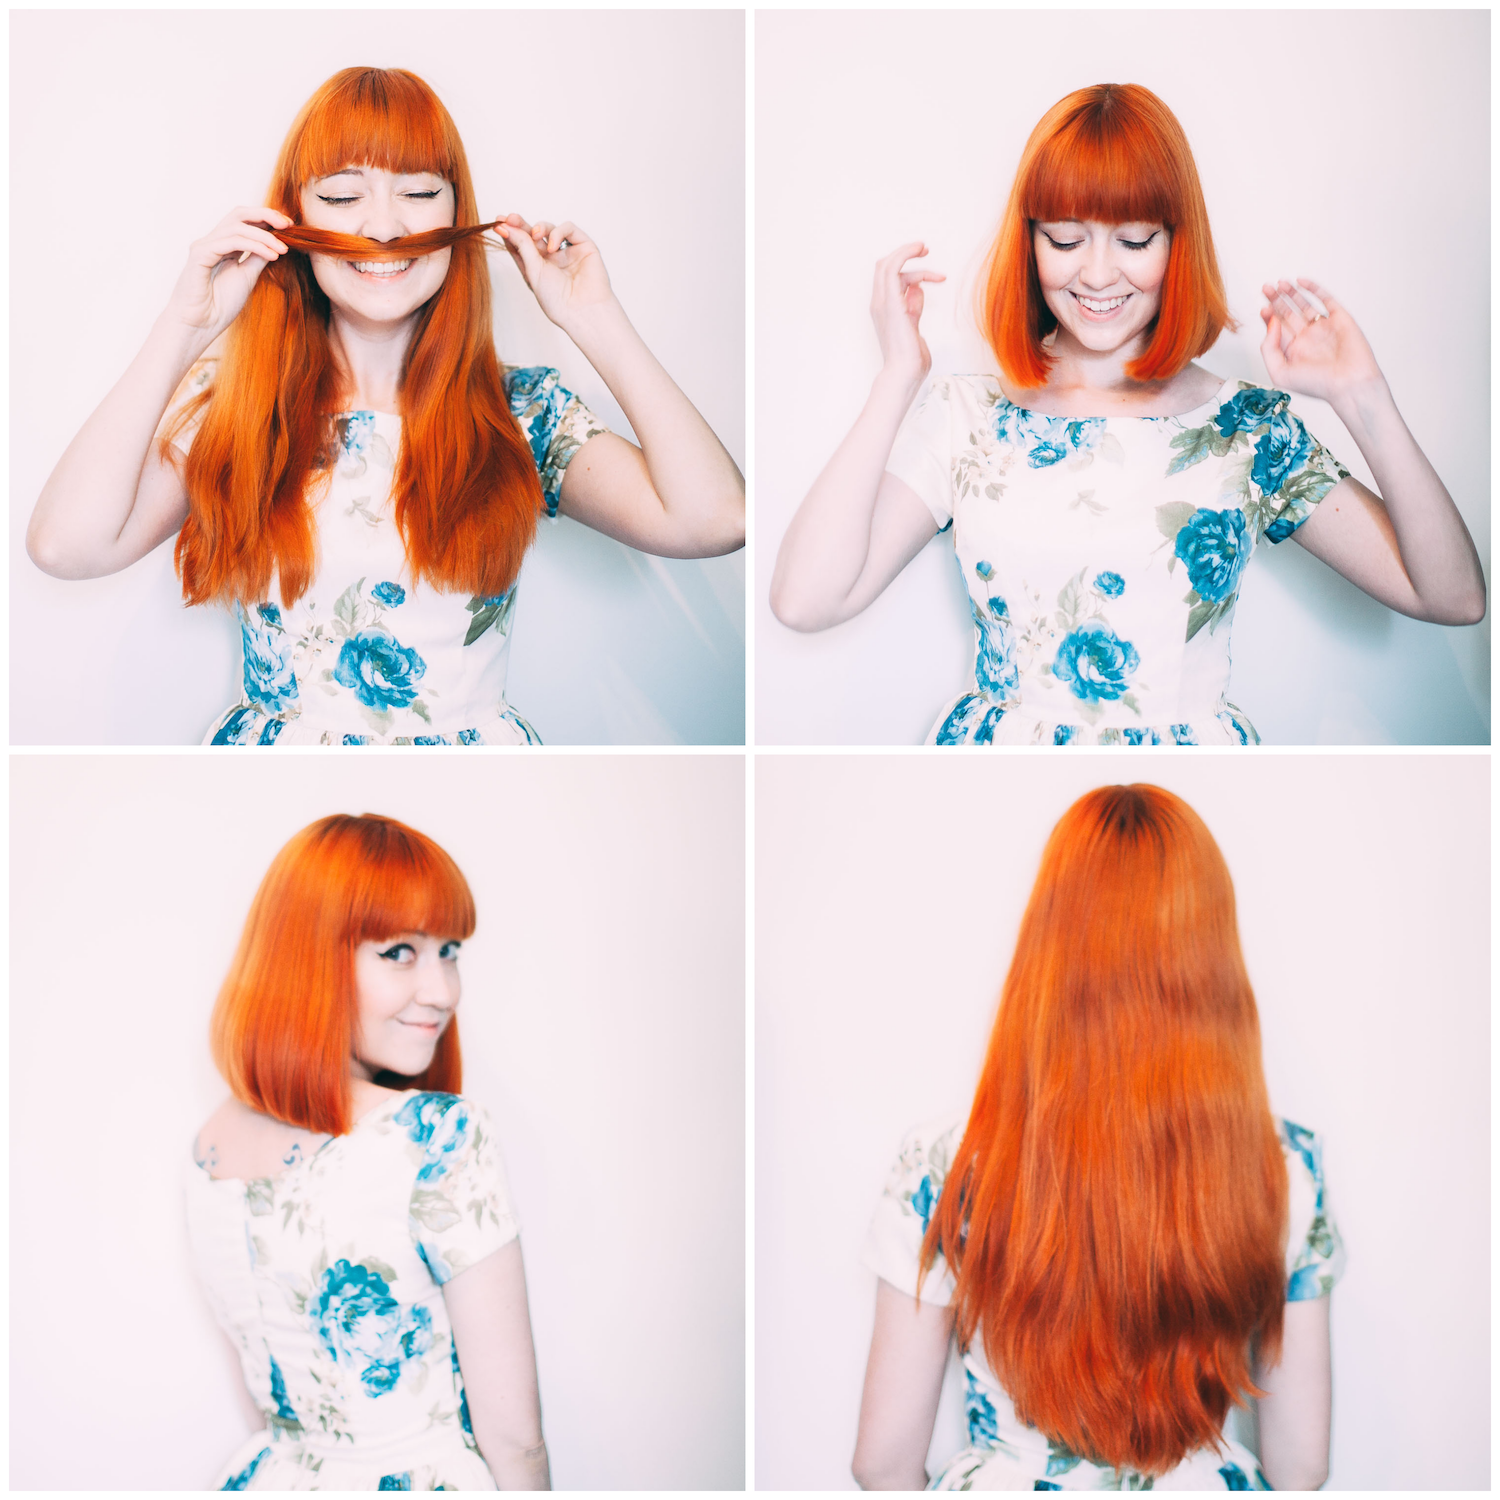 Tips for surviving a major hair change